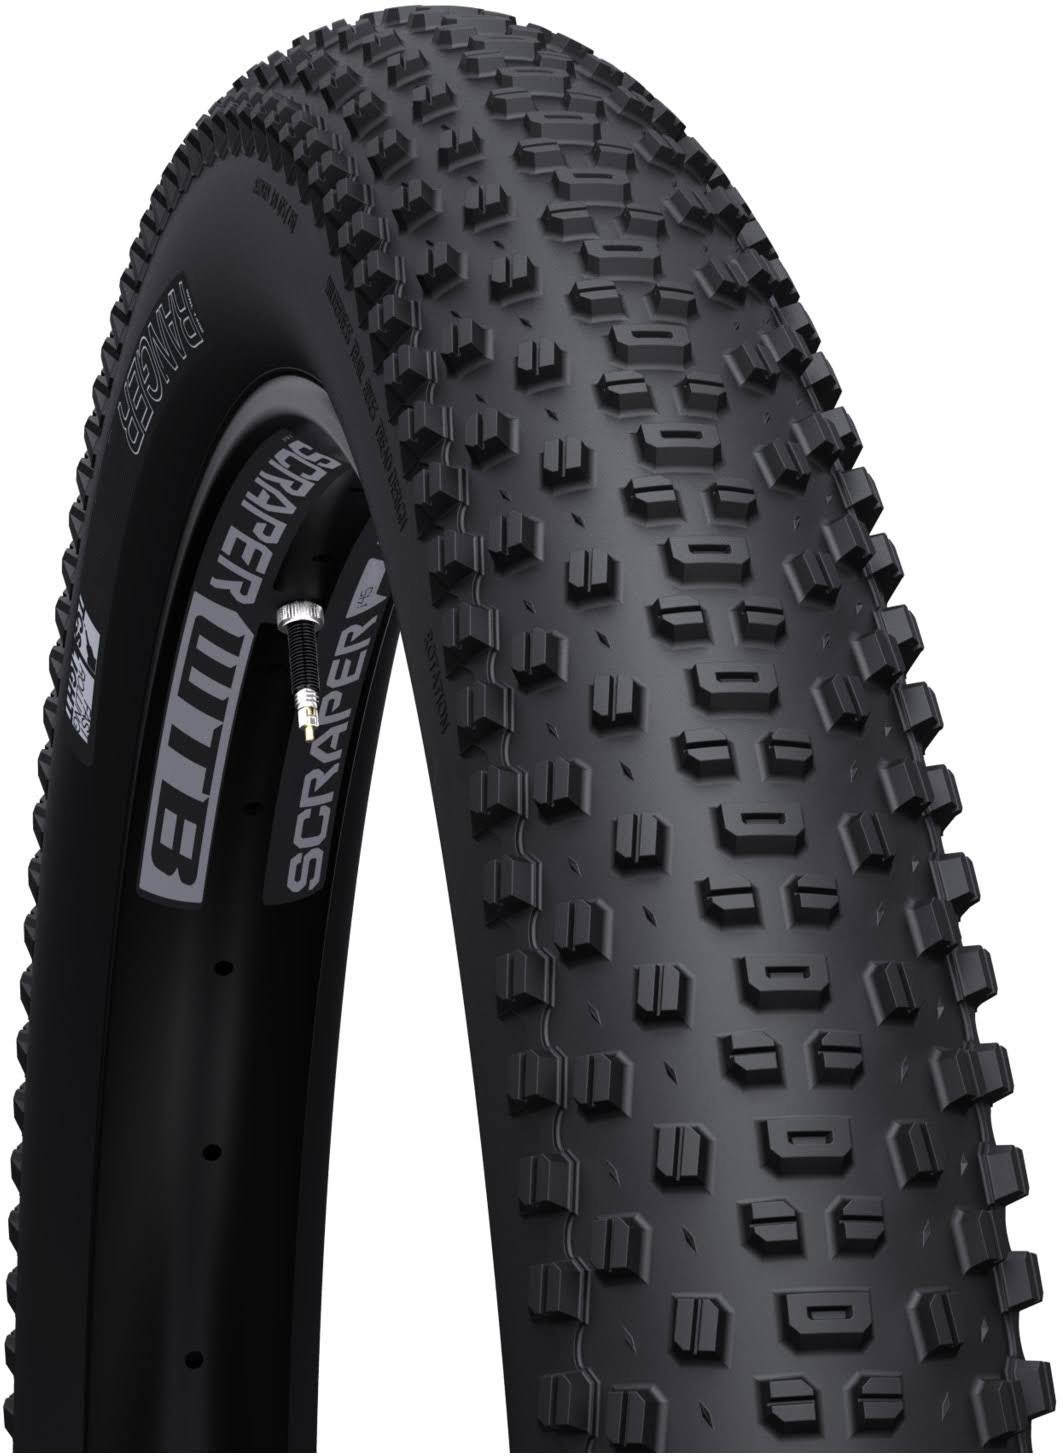 "WTB Ranger TCS Light Fast Rolling Mountain Bike Tire - 27.5"" X 2.8"""